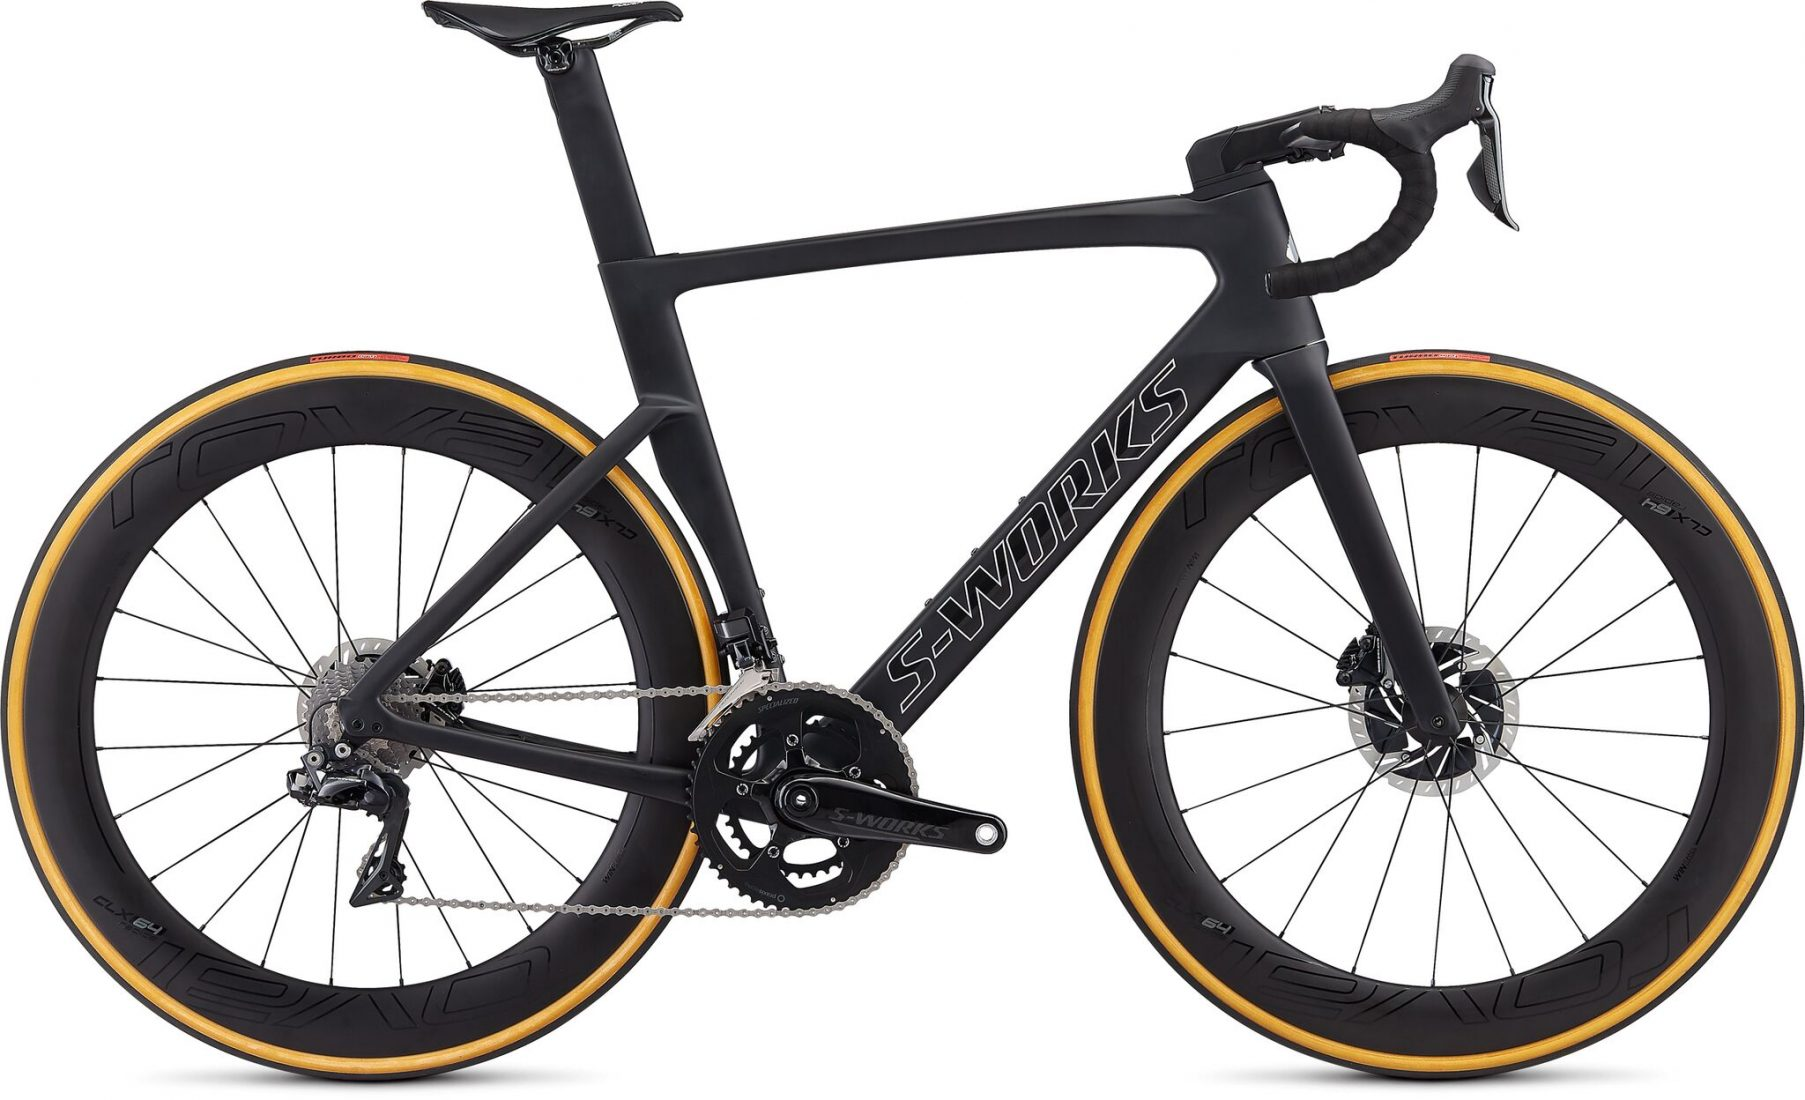 Nuova Specialized S'Works Venge